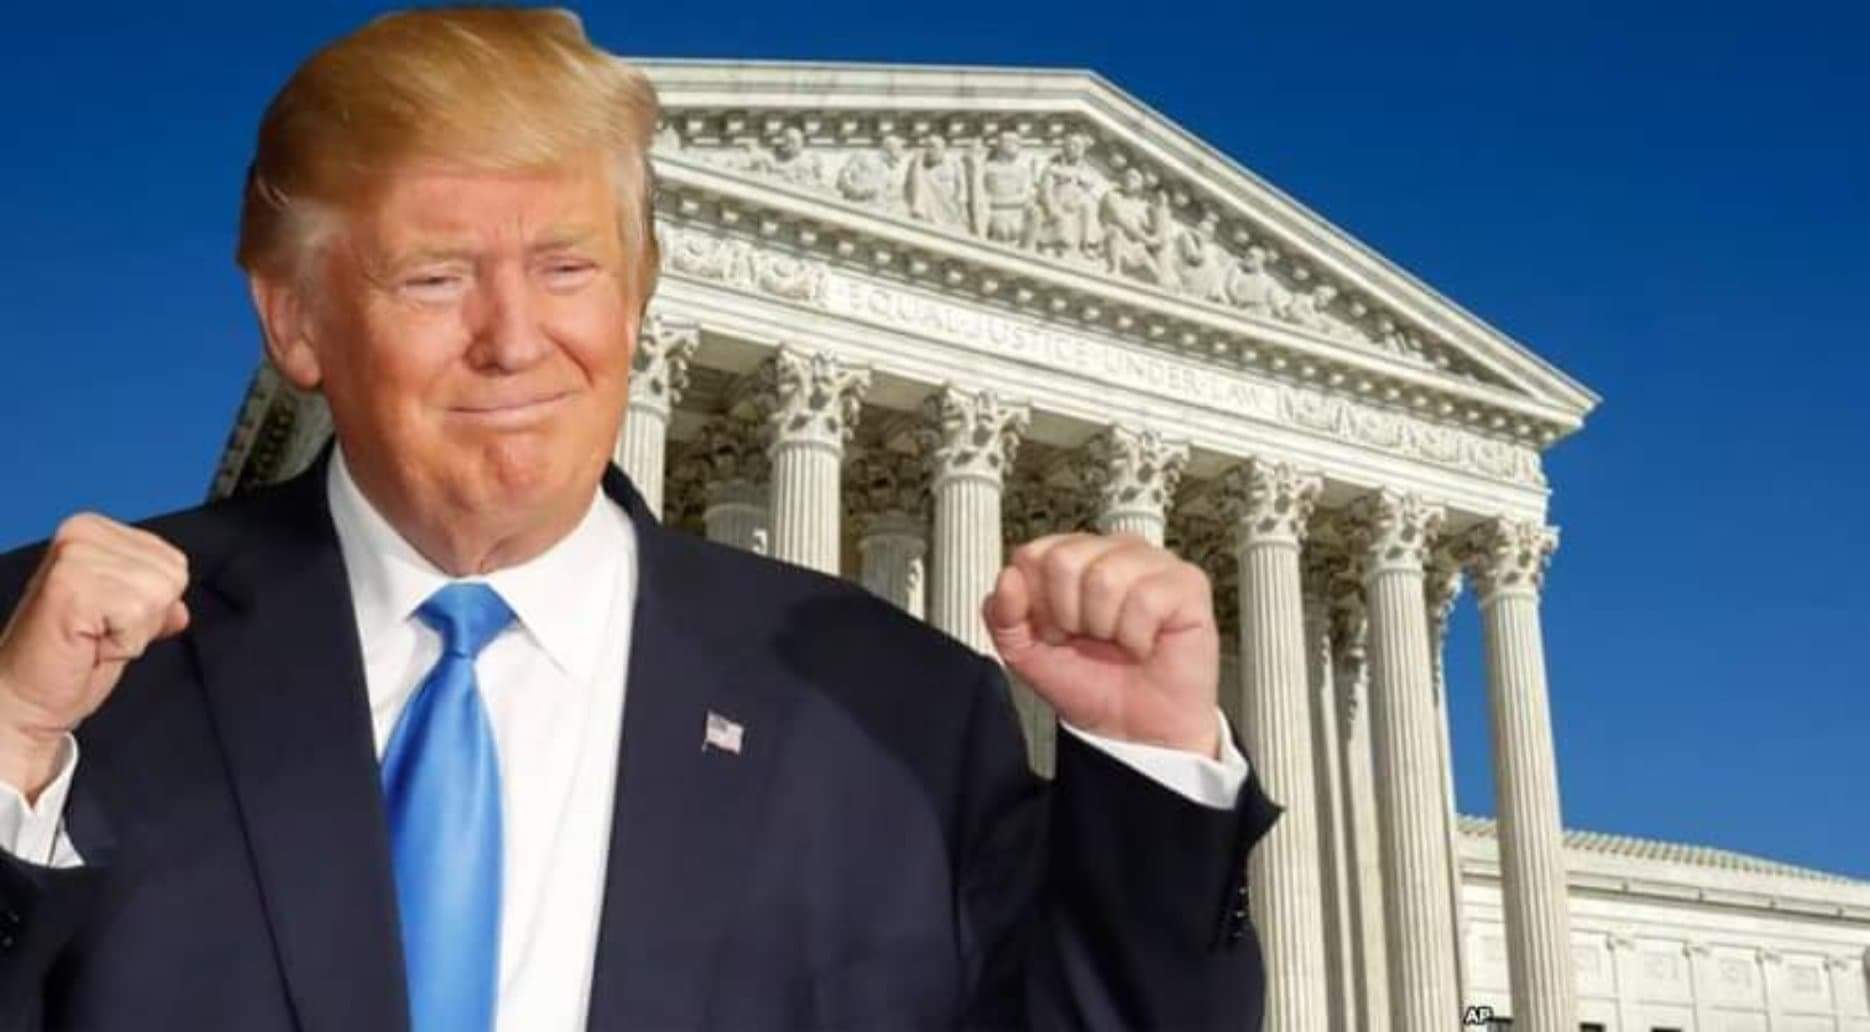 Trump emoluments lawsuits thrown out by US Supreme Court